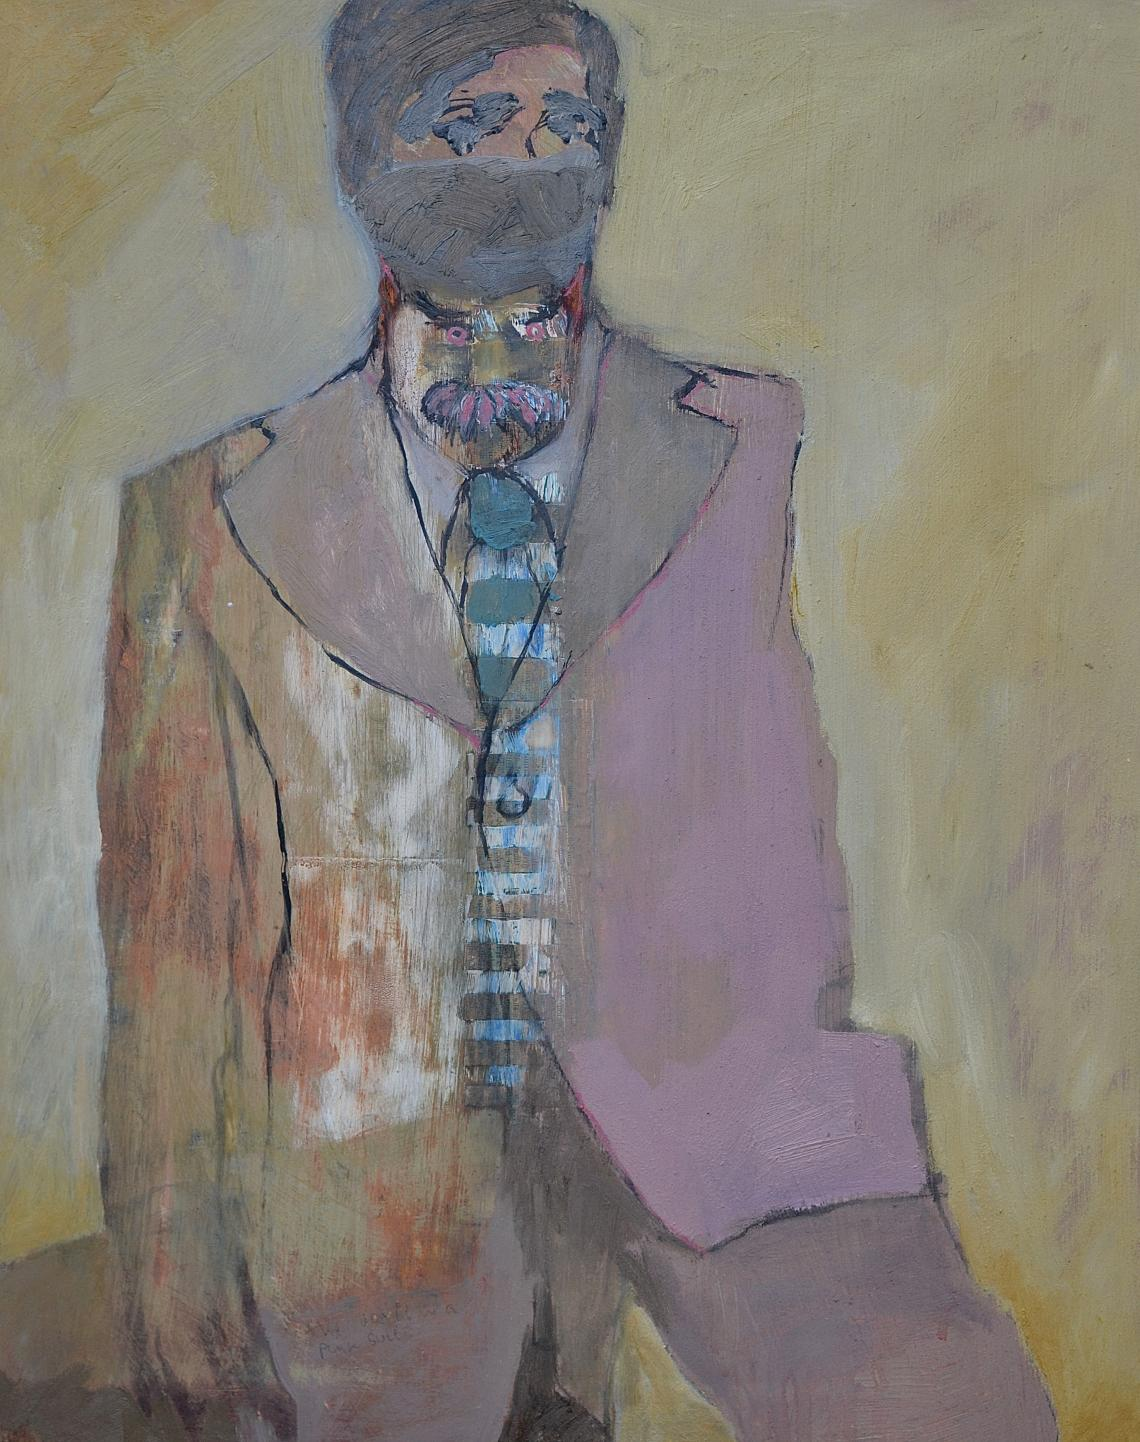 Devil in a Pink Suit, painting by Richard Ballinger